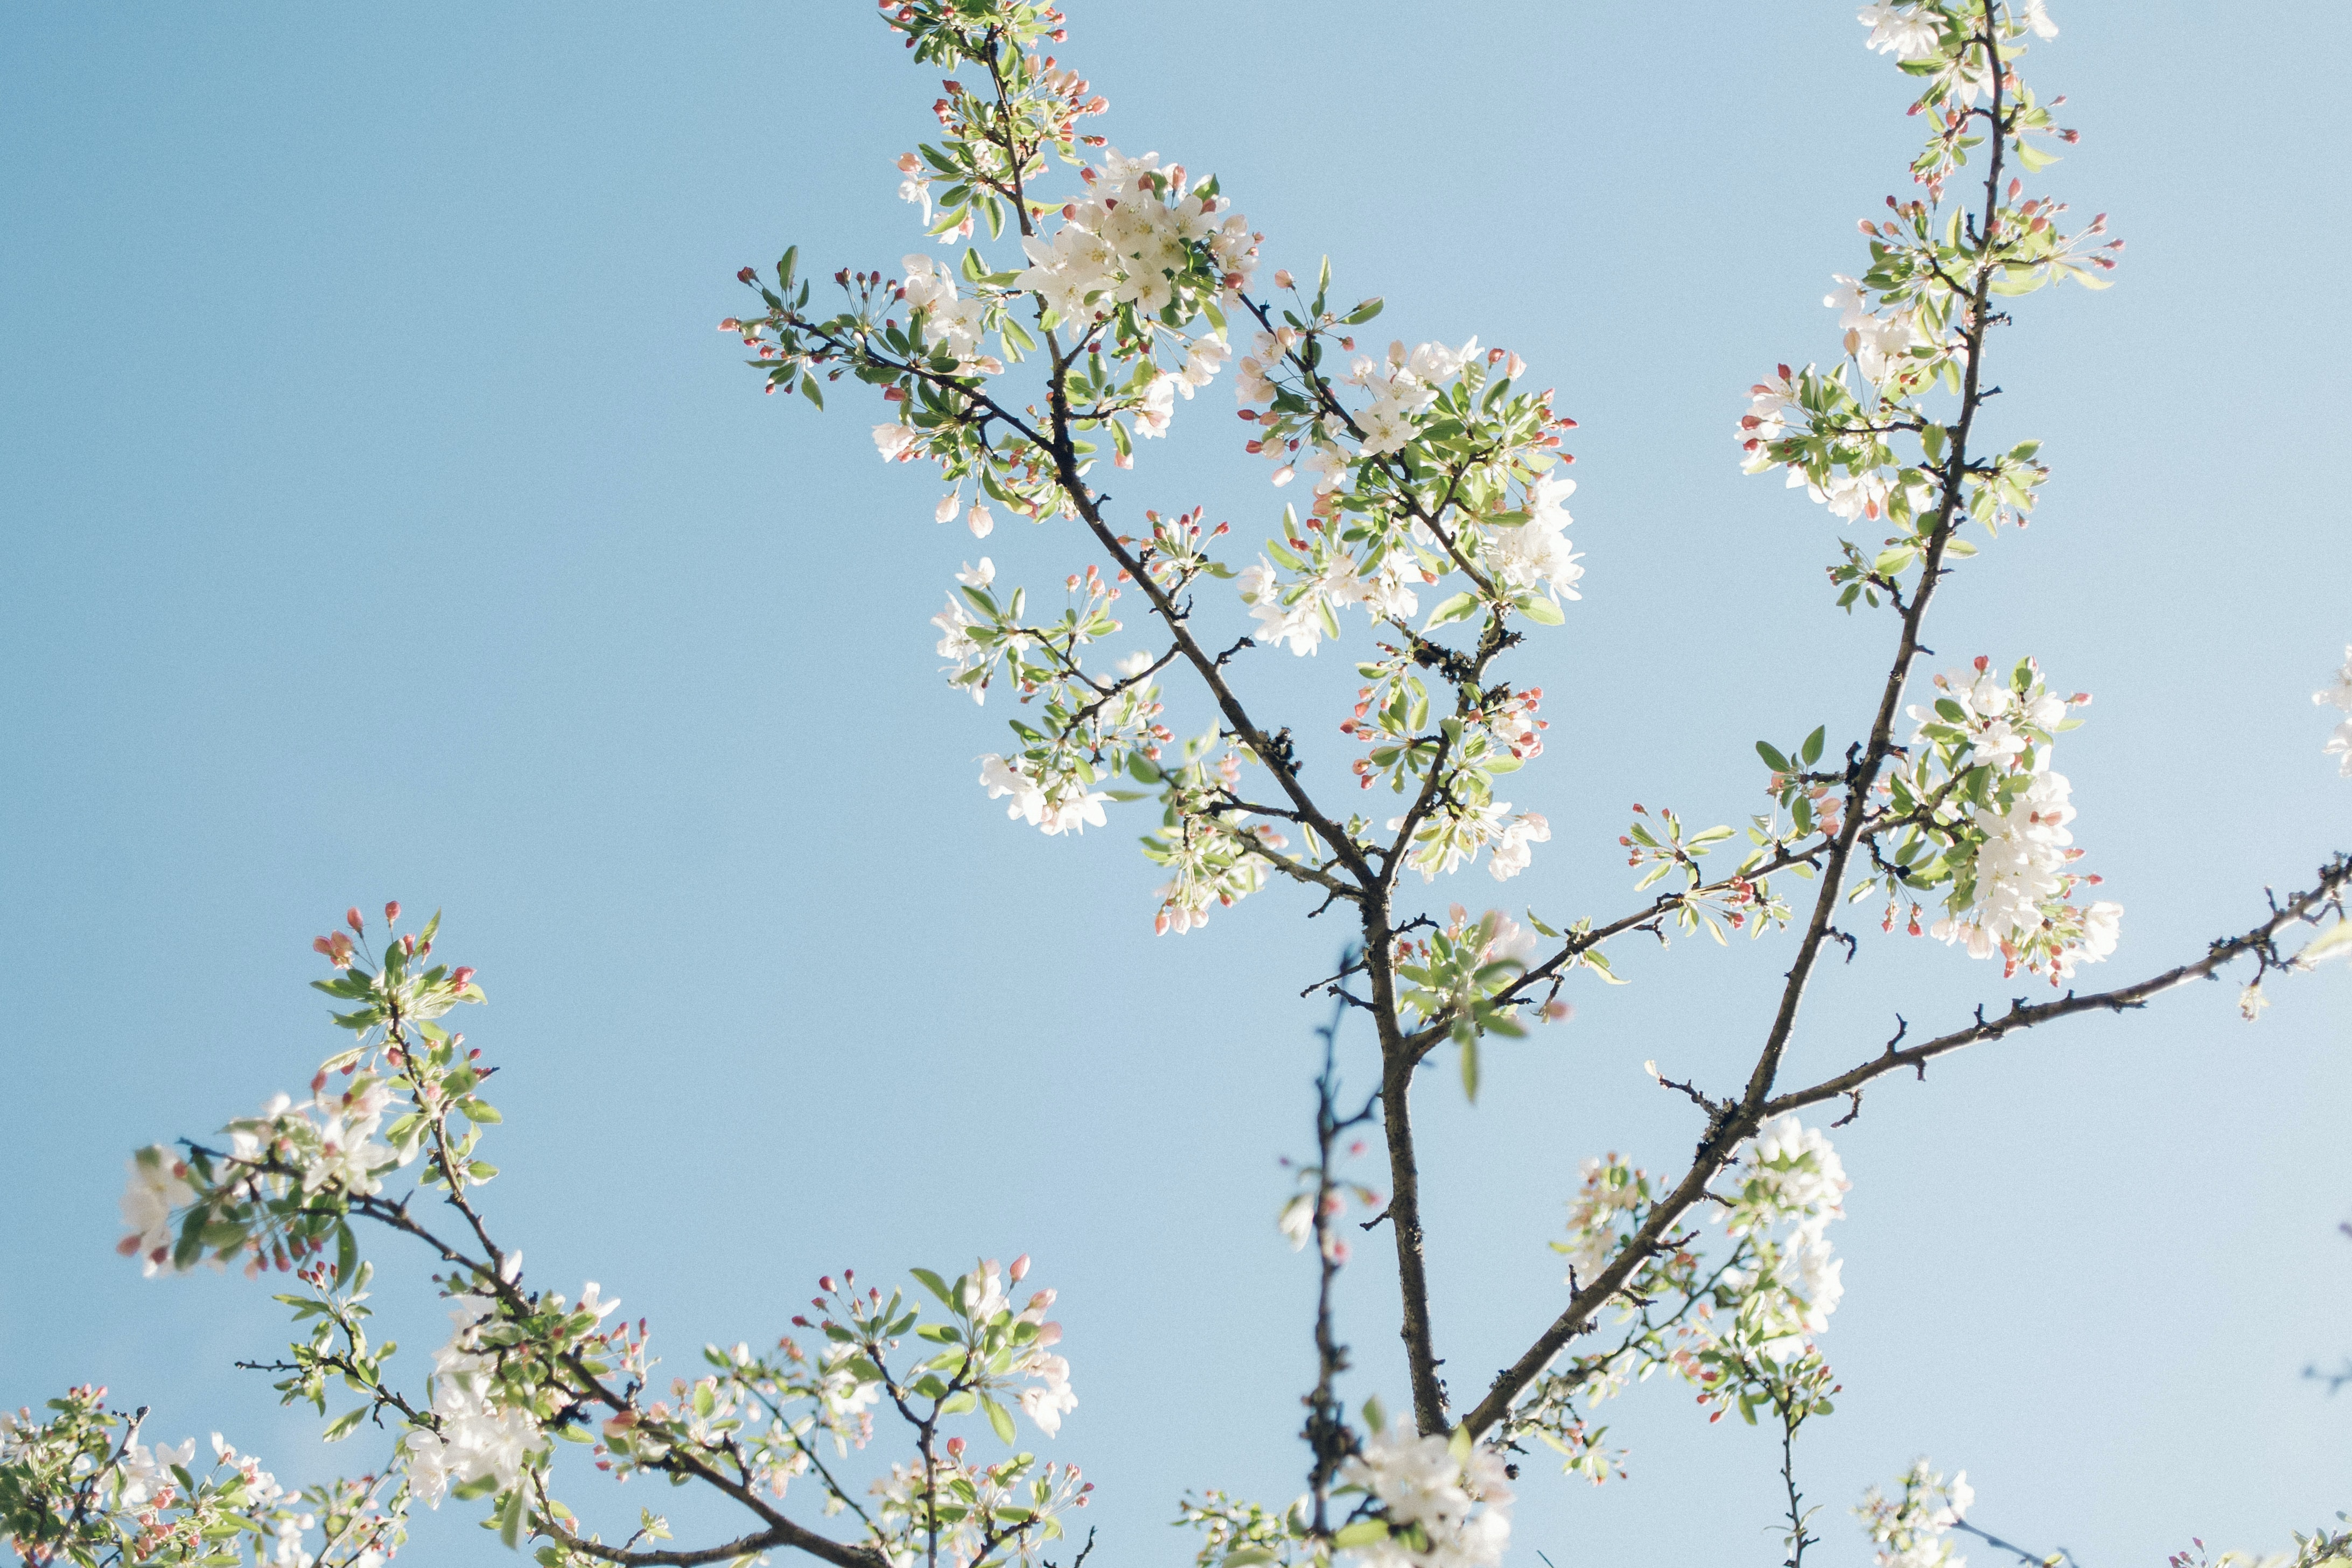 White cherry blossom branch against clear blue sky in Spring